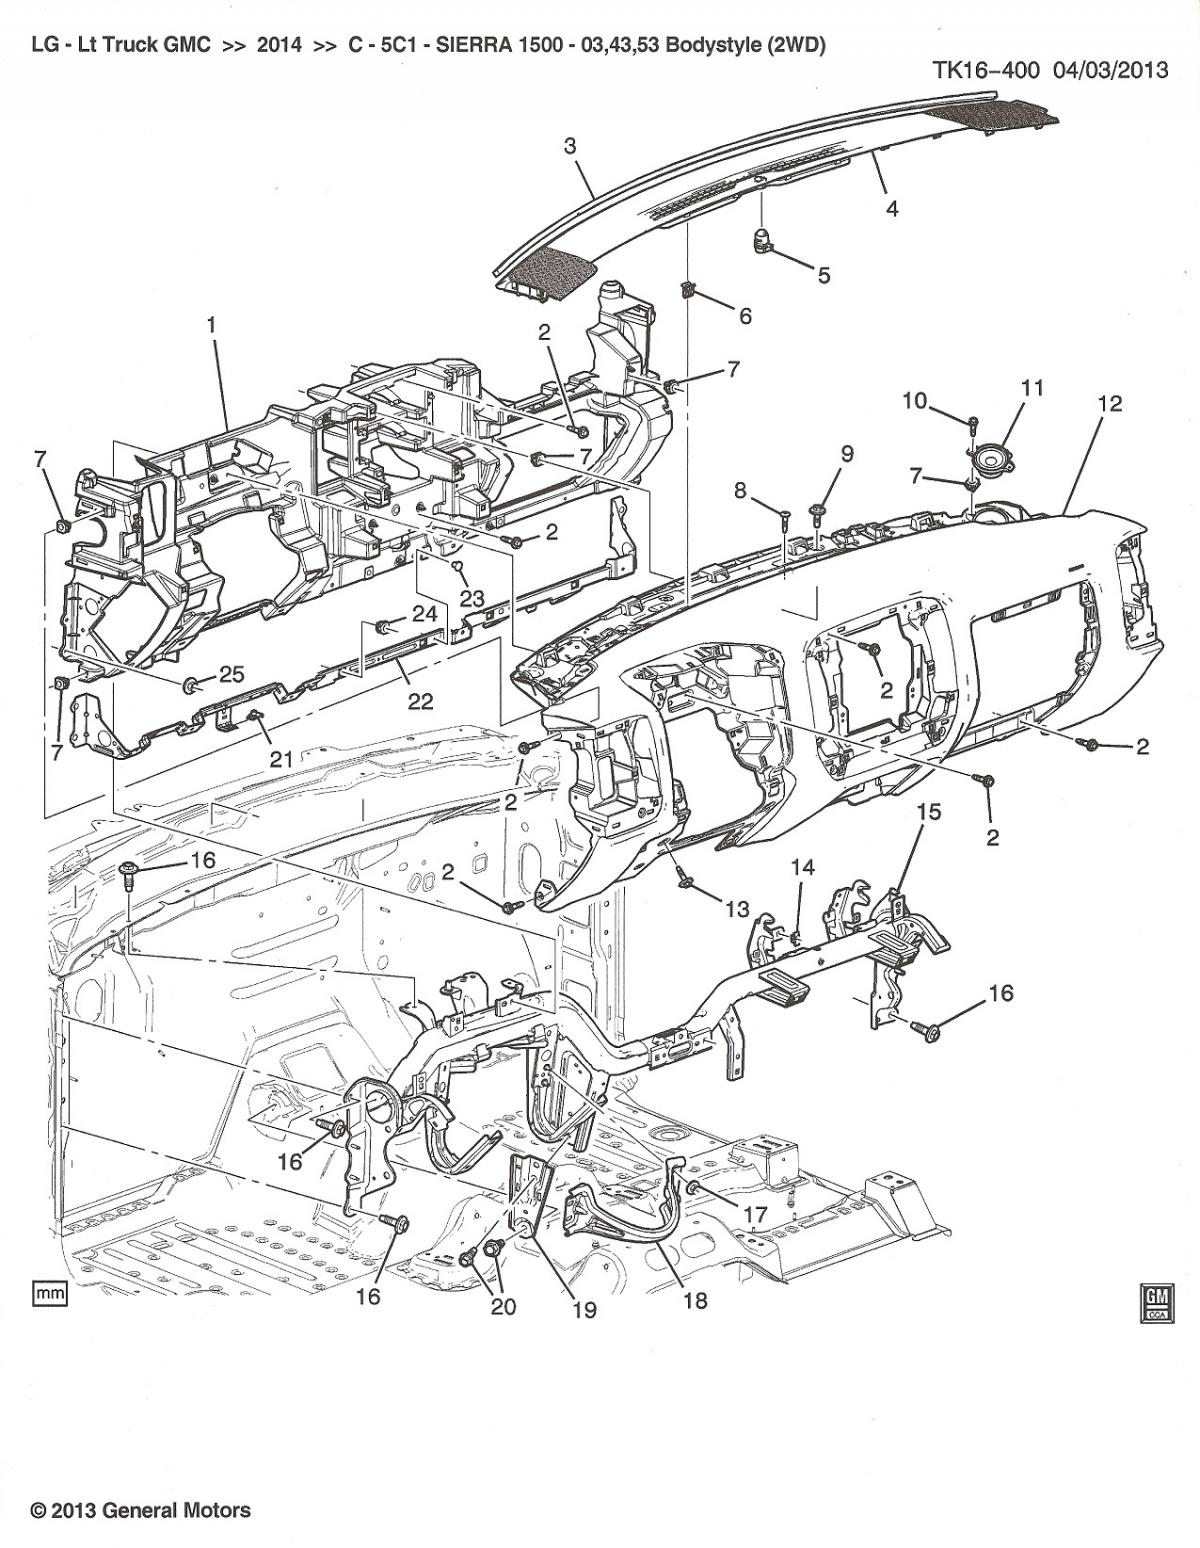 [DIAGRAM] 2010 Chevy Silverado Parts Diagram FULL Version